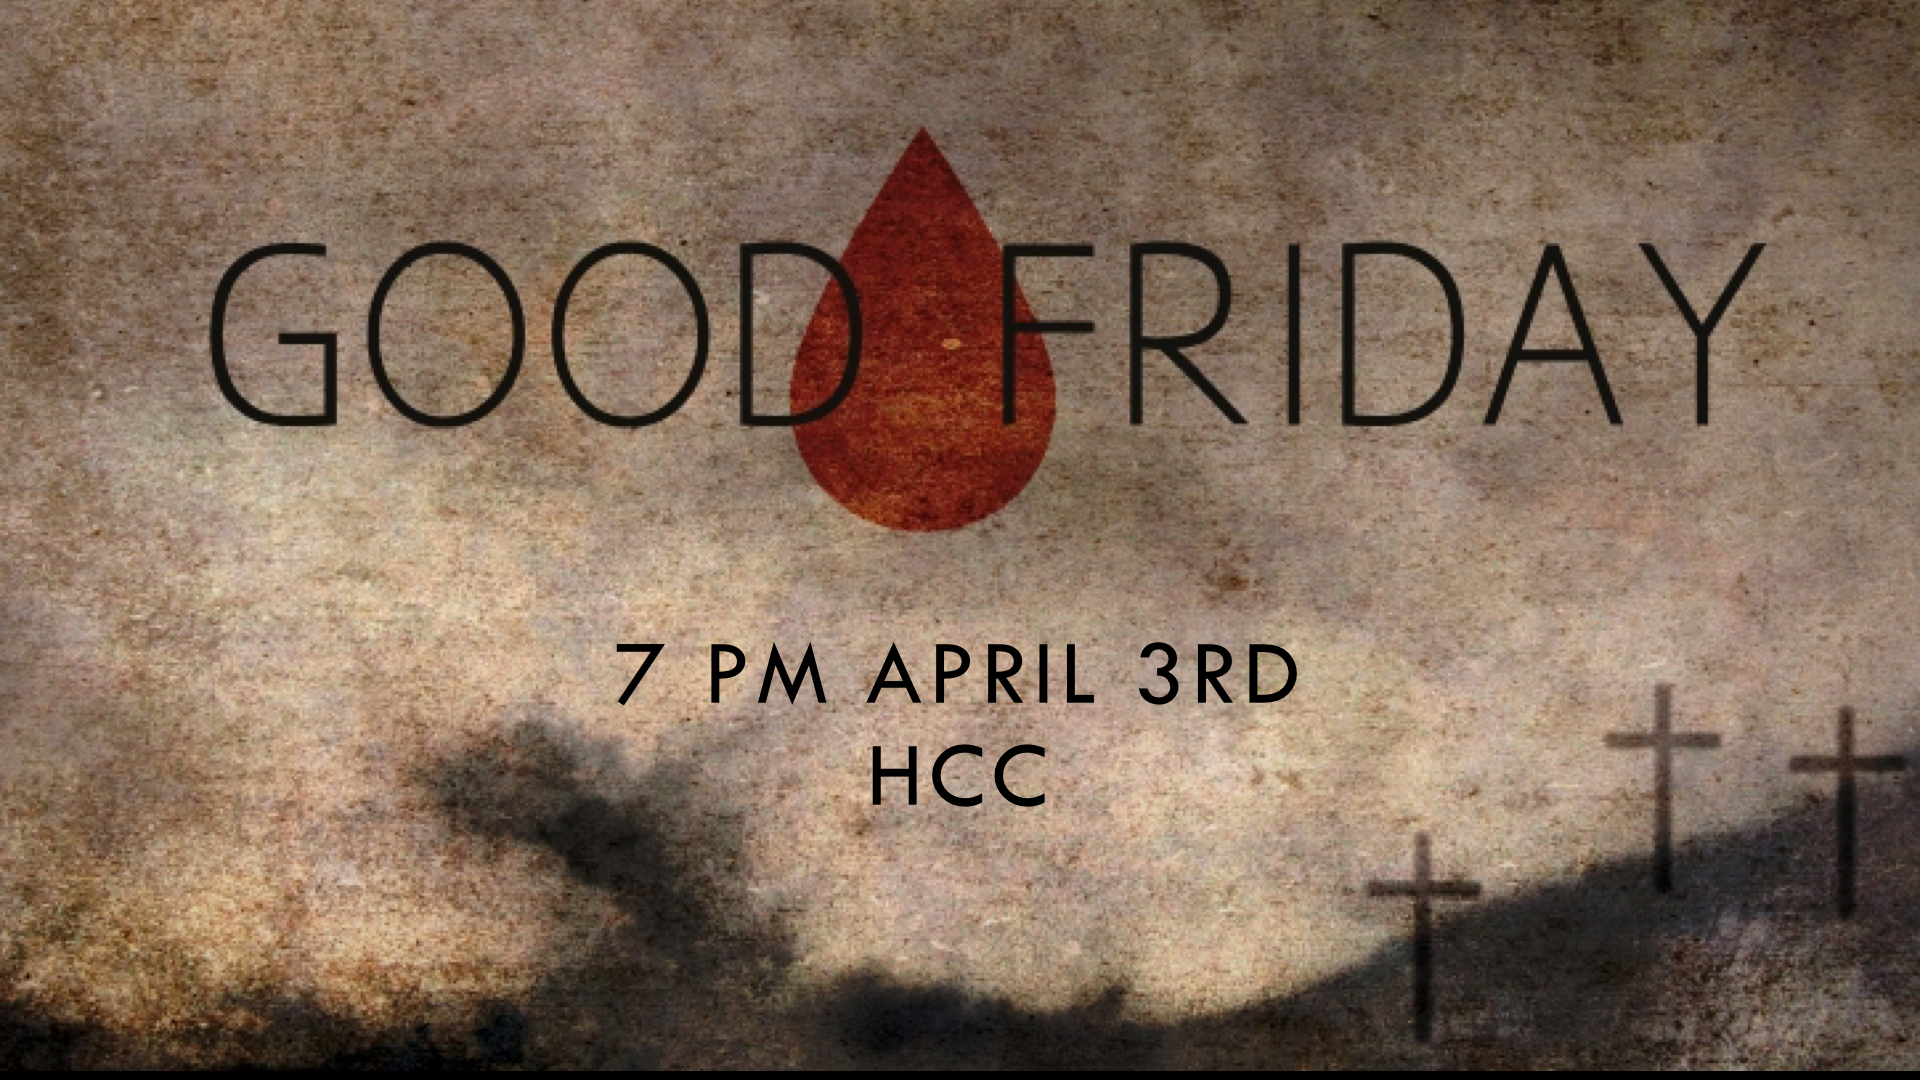 Our Reflective Service at the HCC on Good Friday